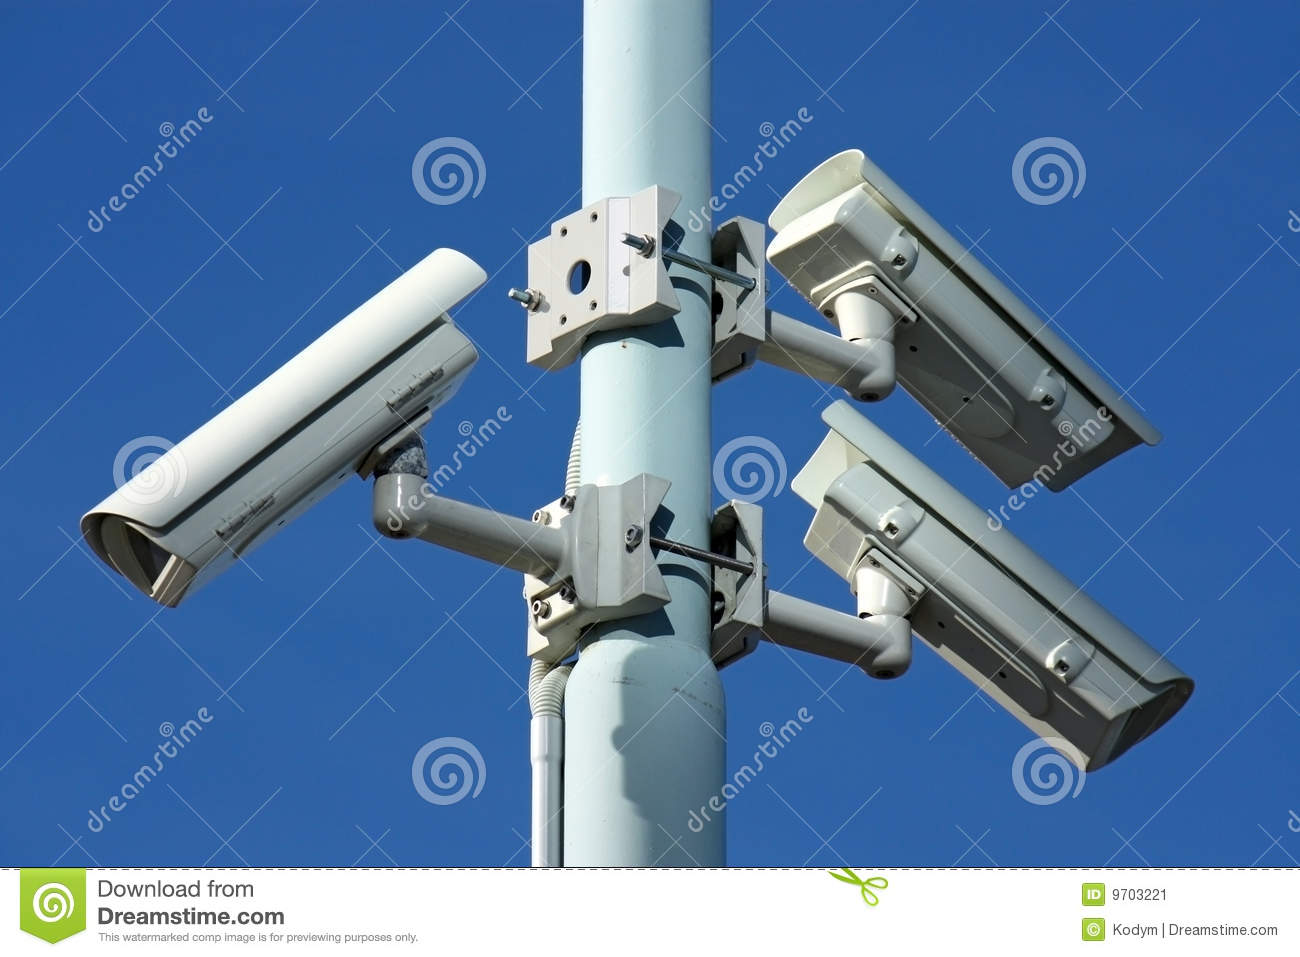 Three security cameras on power pole